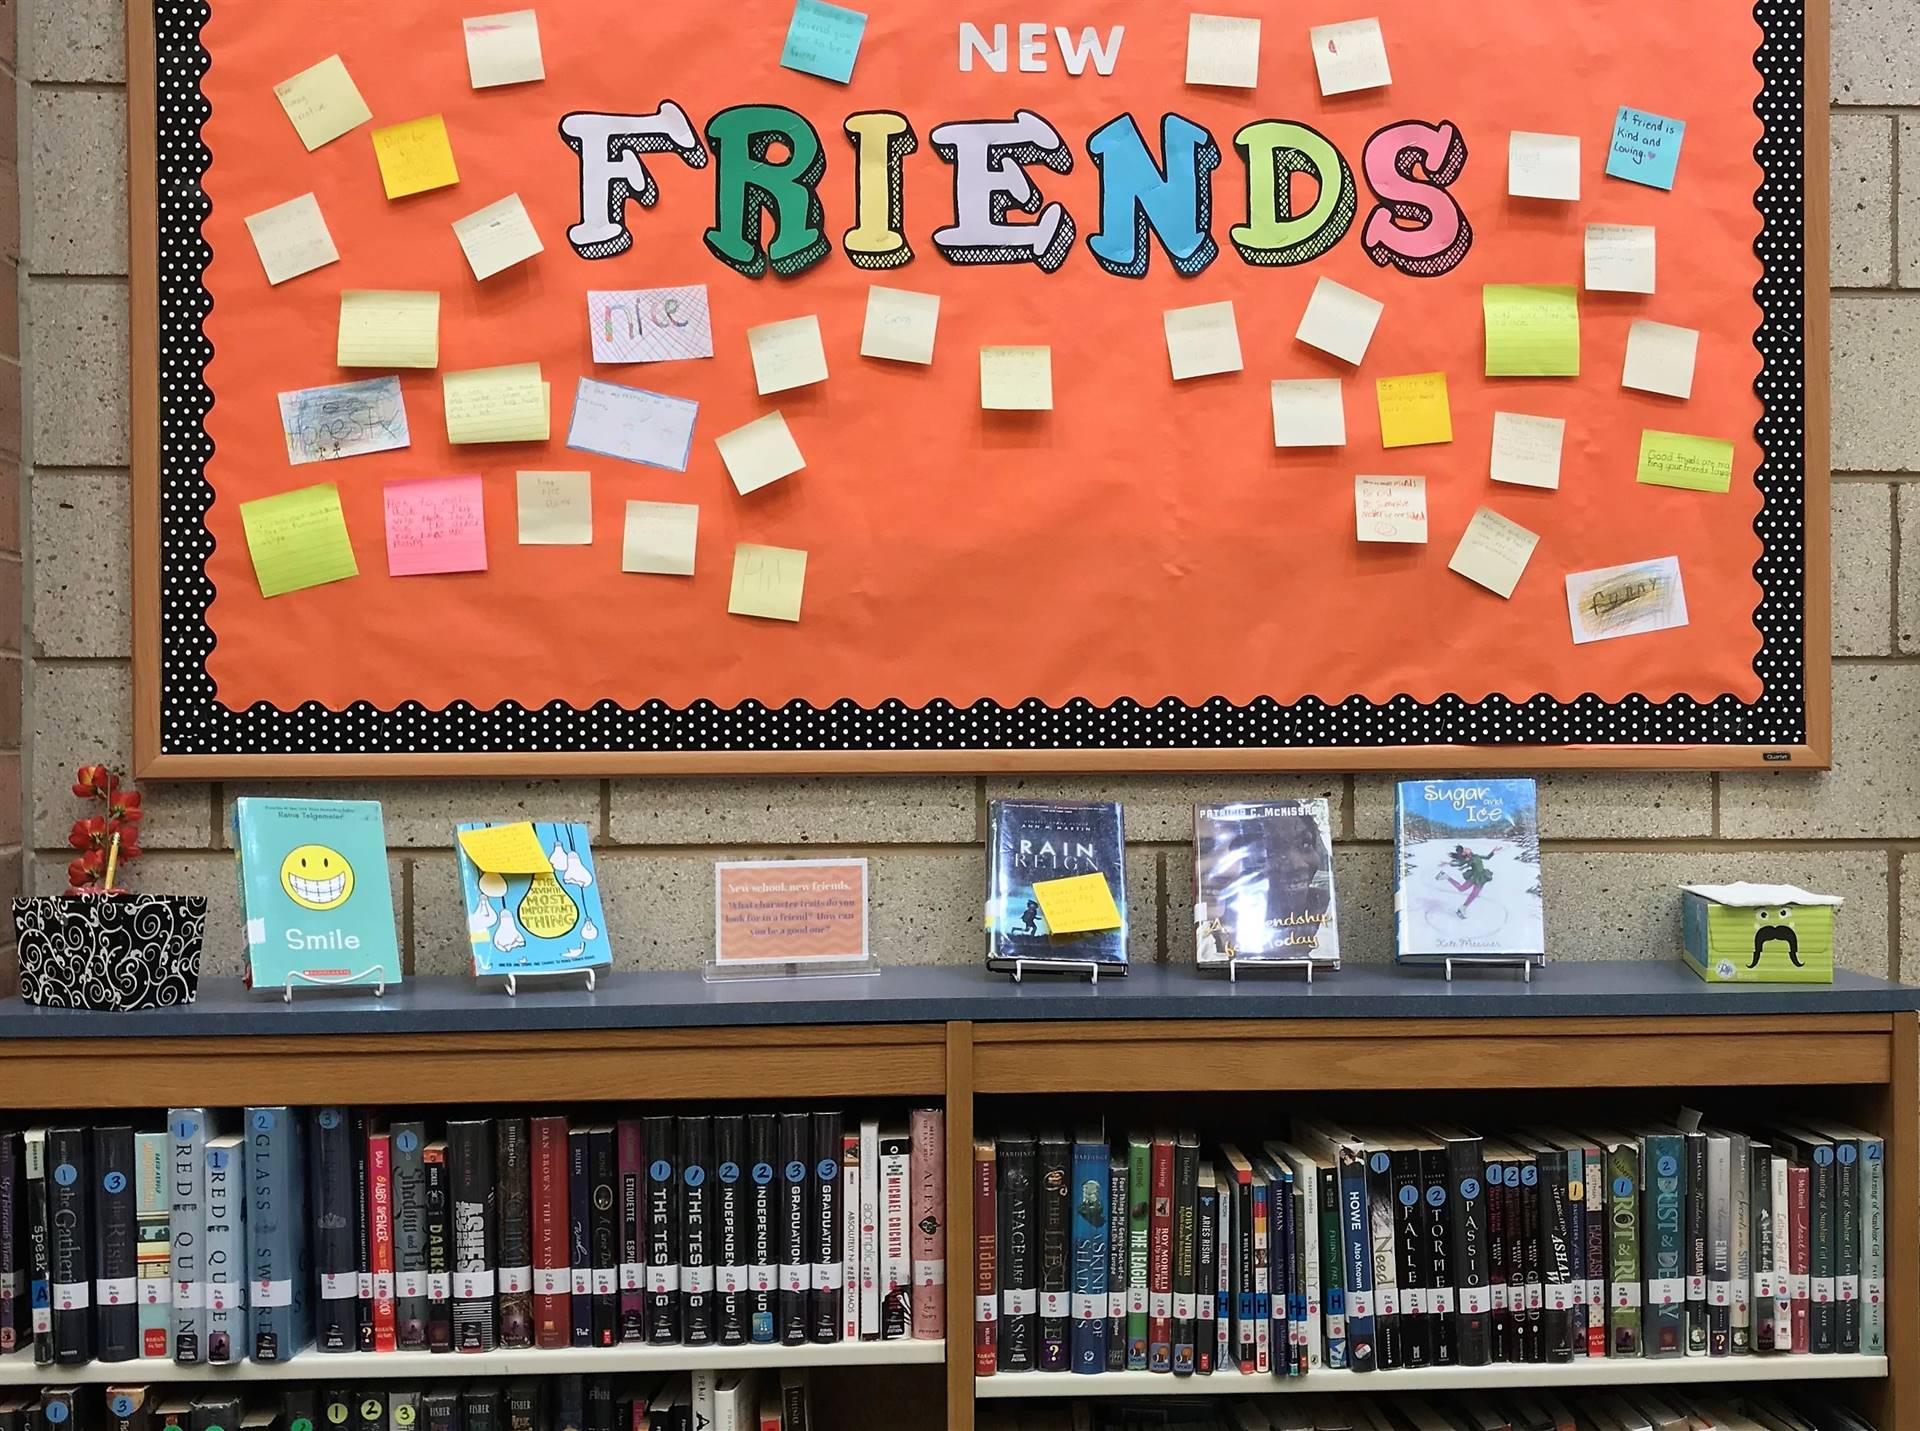 Featured Books Highlighting Theme: New Friends